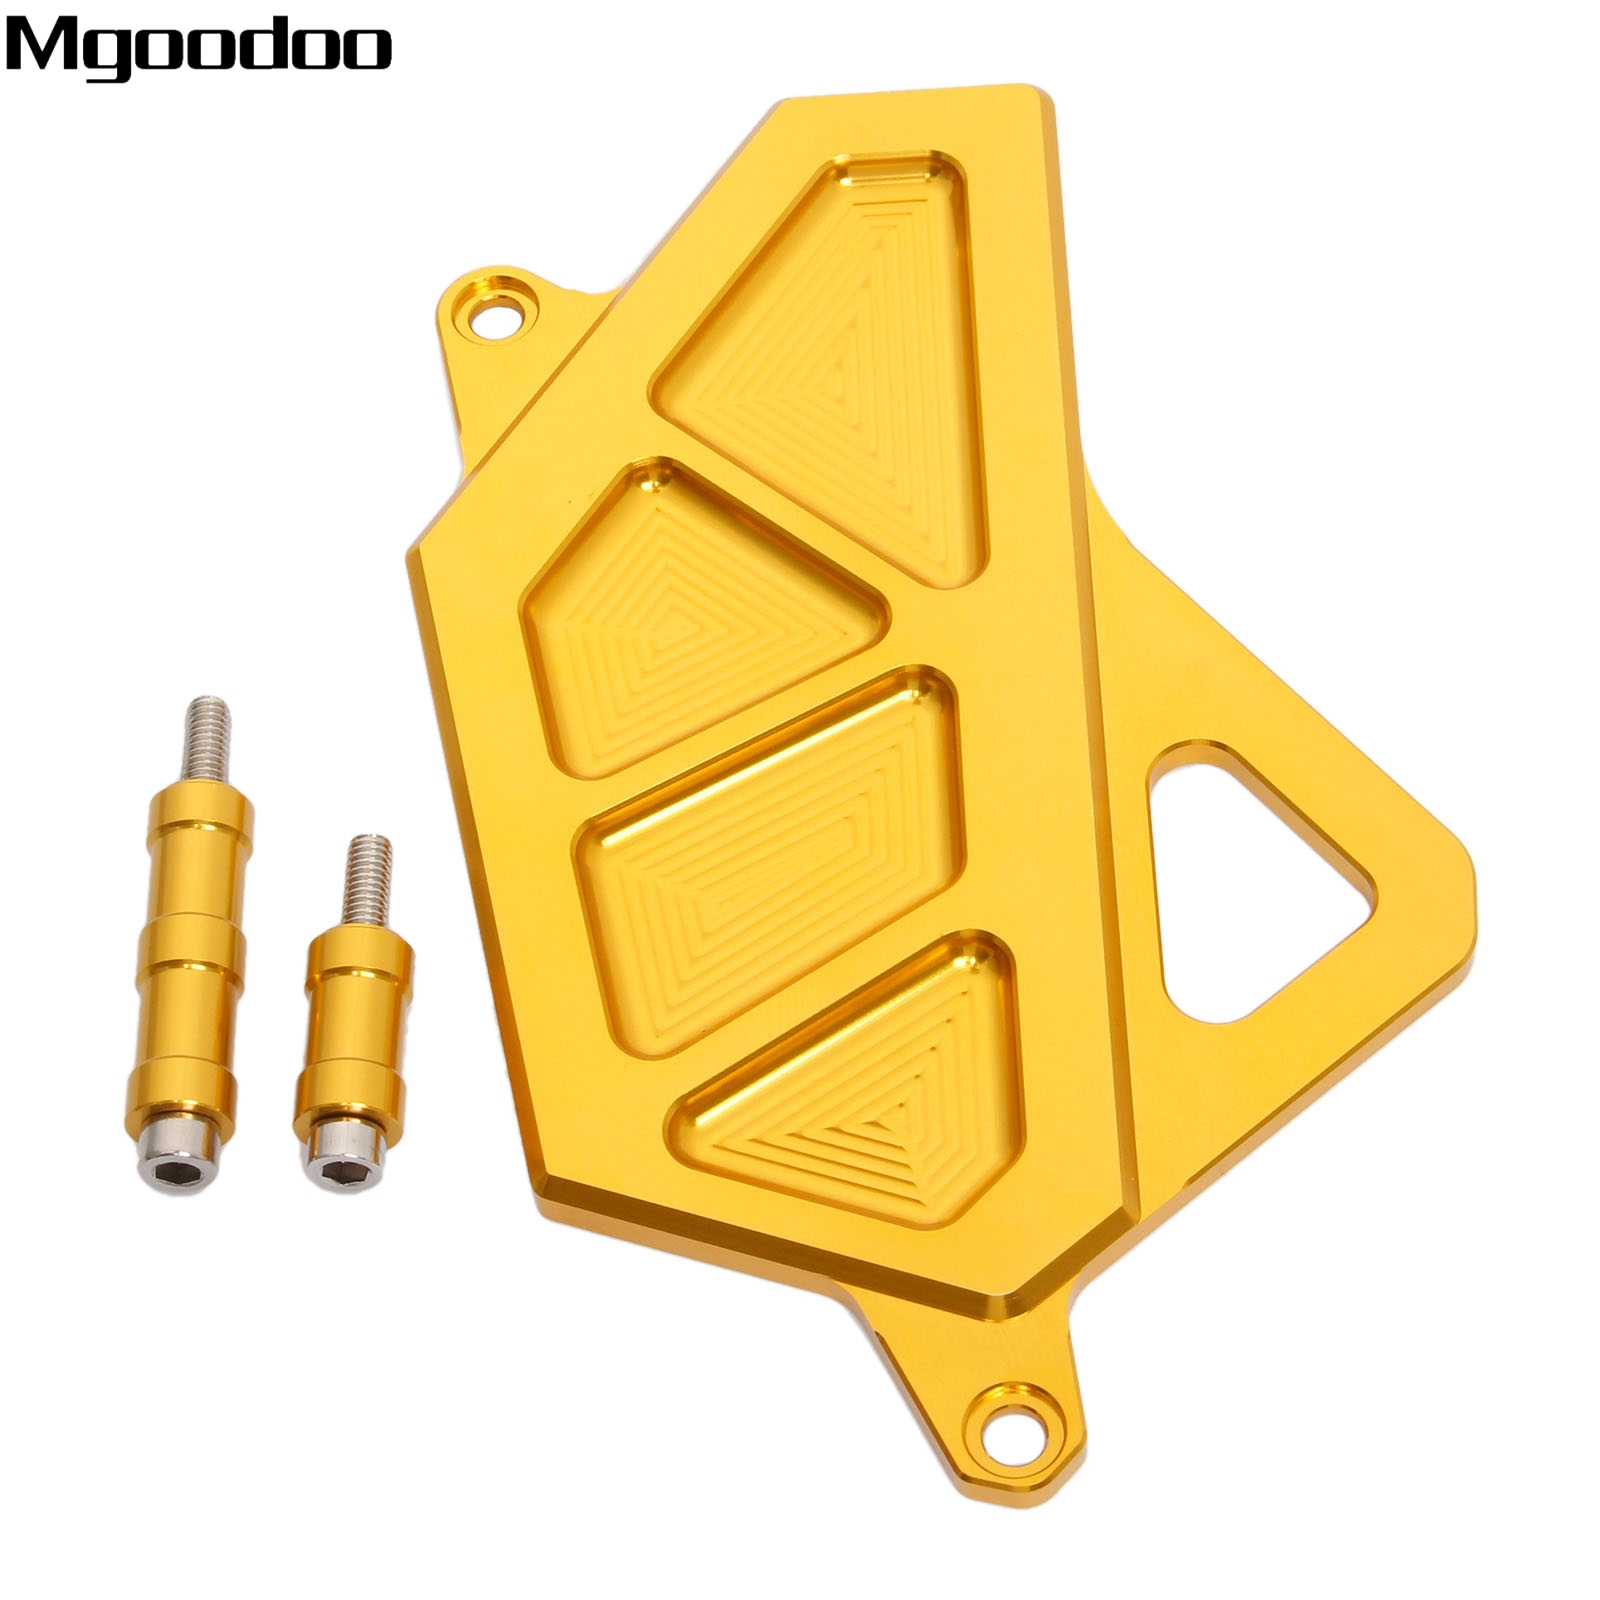 Mgoodoo CNC Aluminum Motorcycle Left Engine Guard Chain Protector Front Sprocket Cover Panel For YAMAHA R3 R25 2014 2015 2016 mgoodoo cnc aluminum motorcycle left engine guard chain protector front sprocket cover panel for yamaha r3 r25 2014 2015 2016